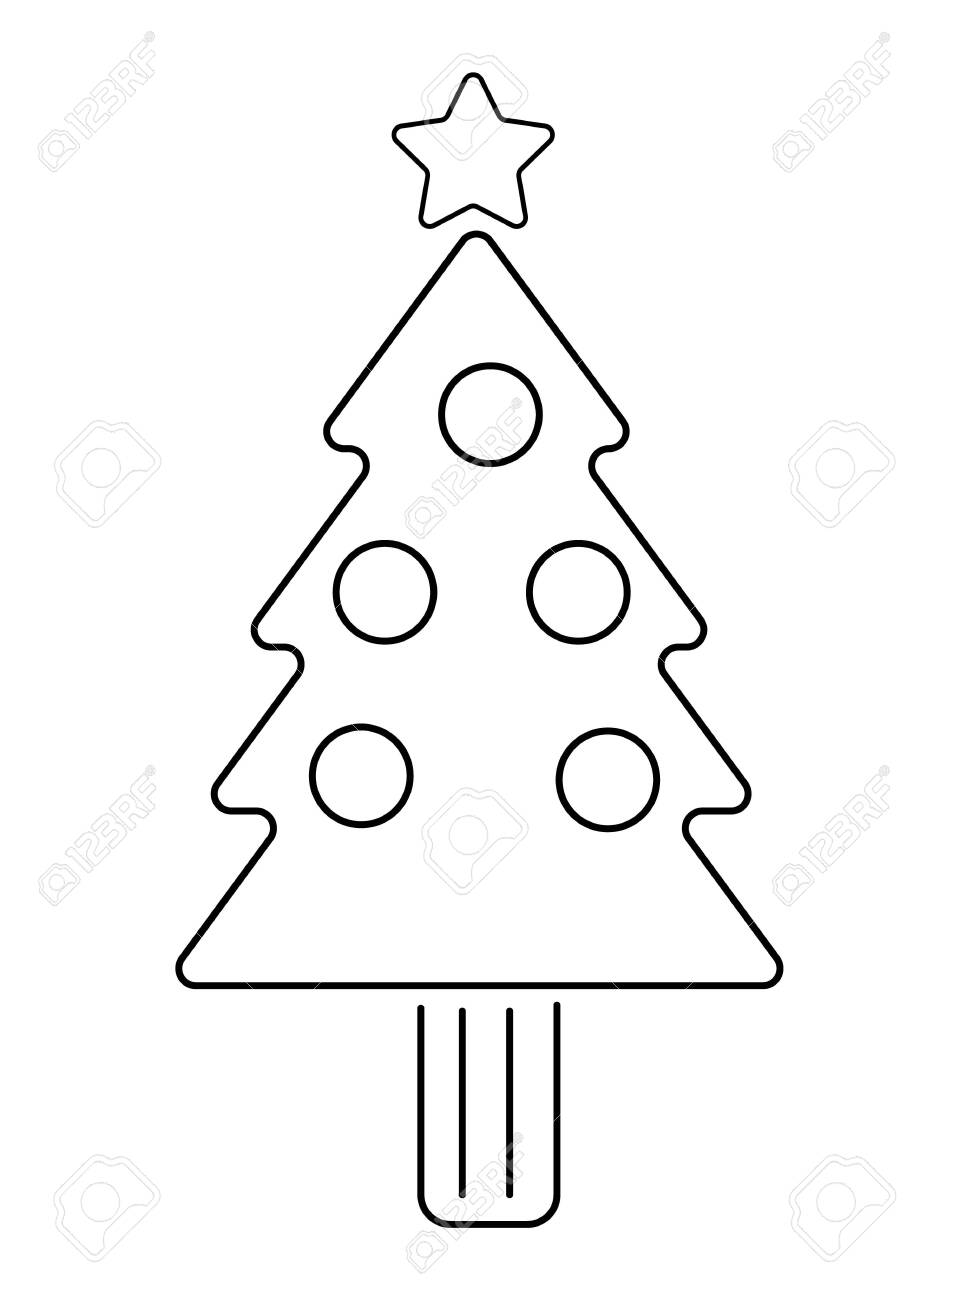 Simple Christmas Tree Outline On White Background Stock Photo Picture And Royalty Free Image Image 120076695